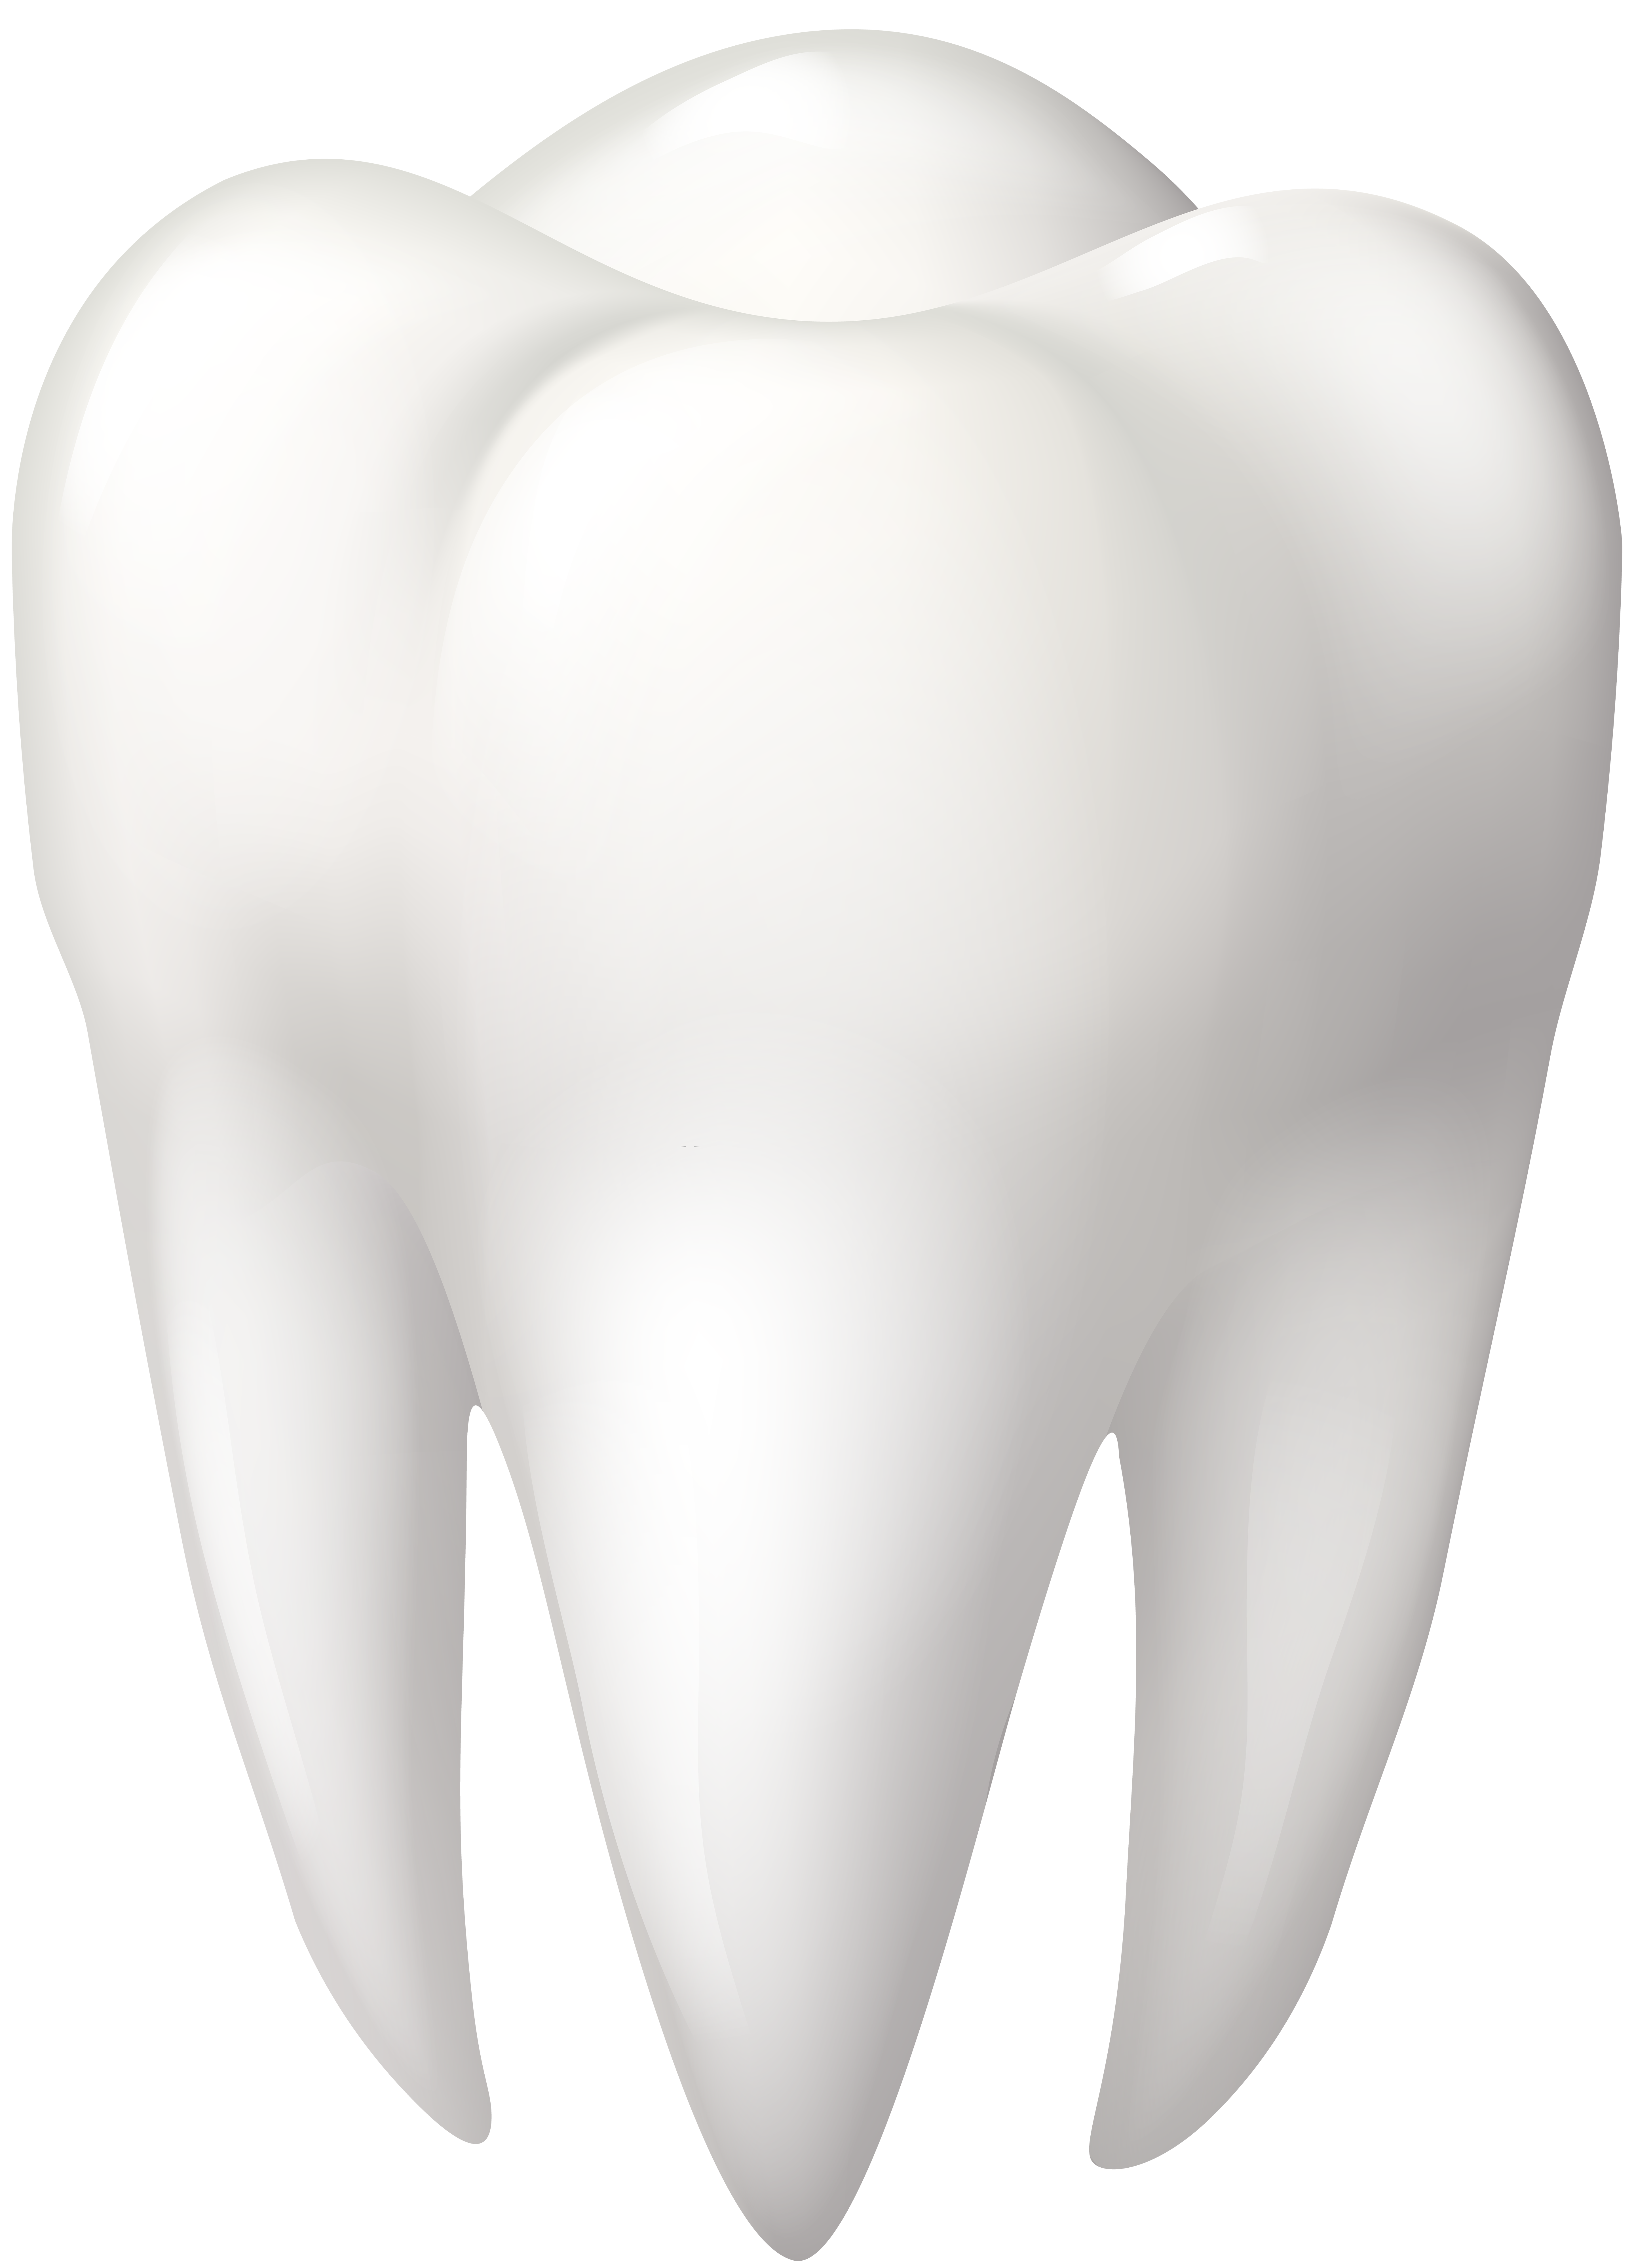 Tooth molar png clip. Dog clipart dental